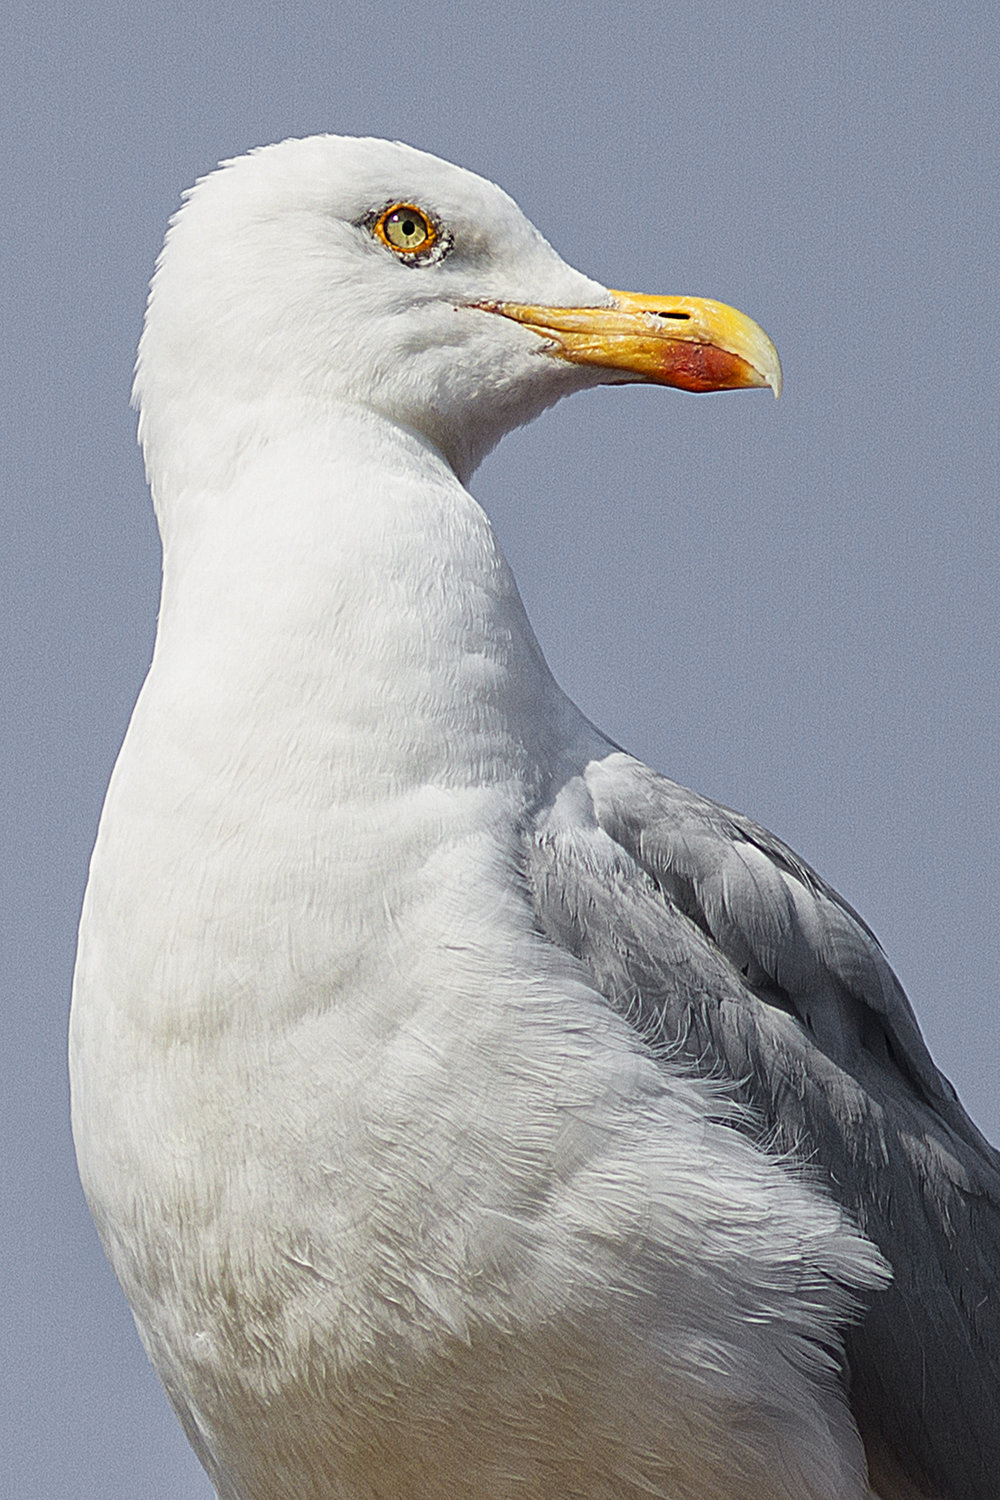 Observing Read about The European herring gull Comments